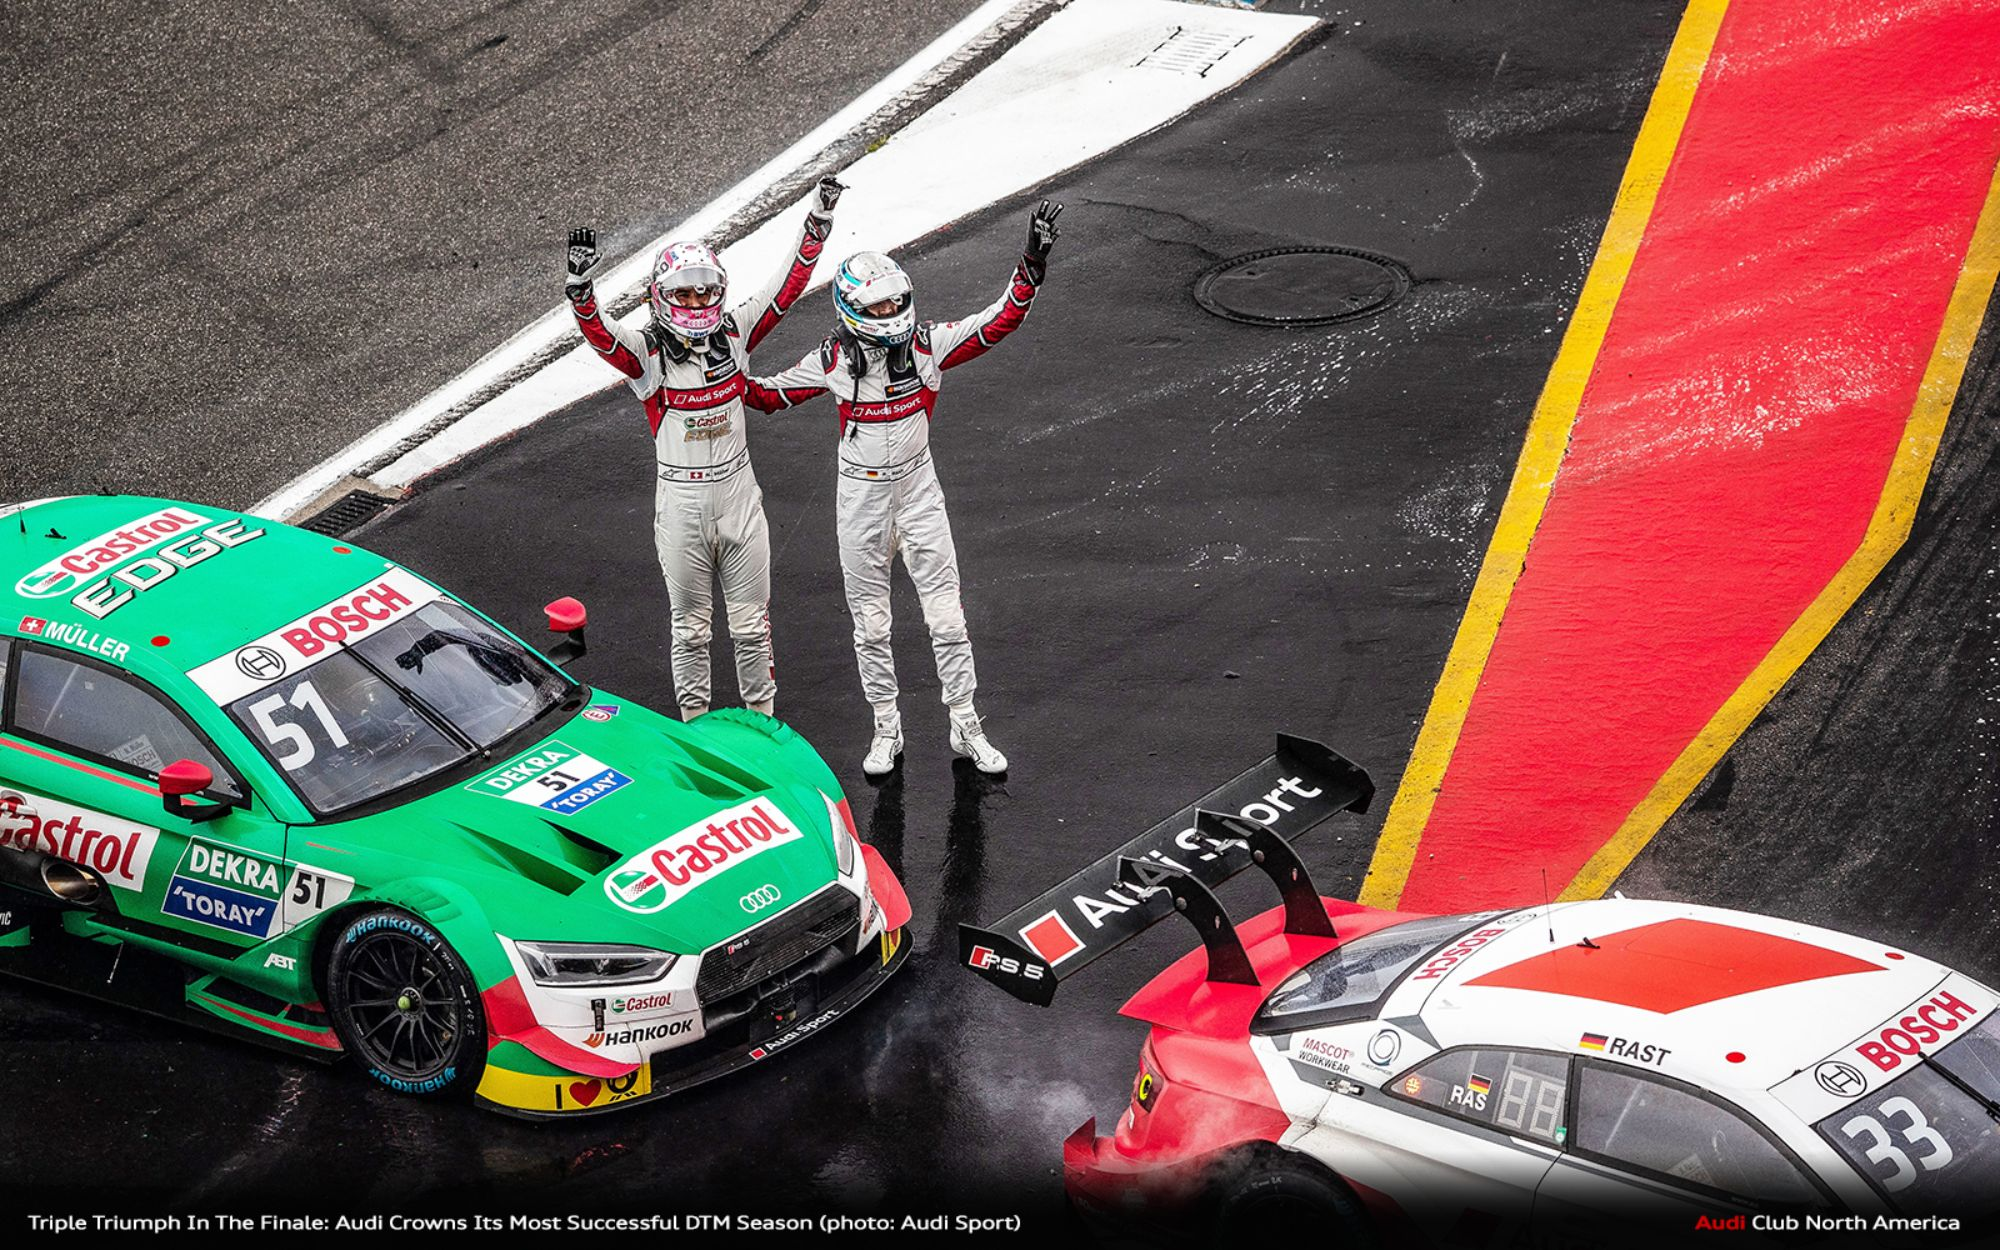 Triple Triumph In The Finale: Audi Crowns Its Most Successful DTM Season